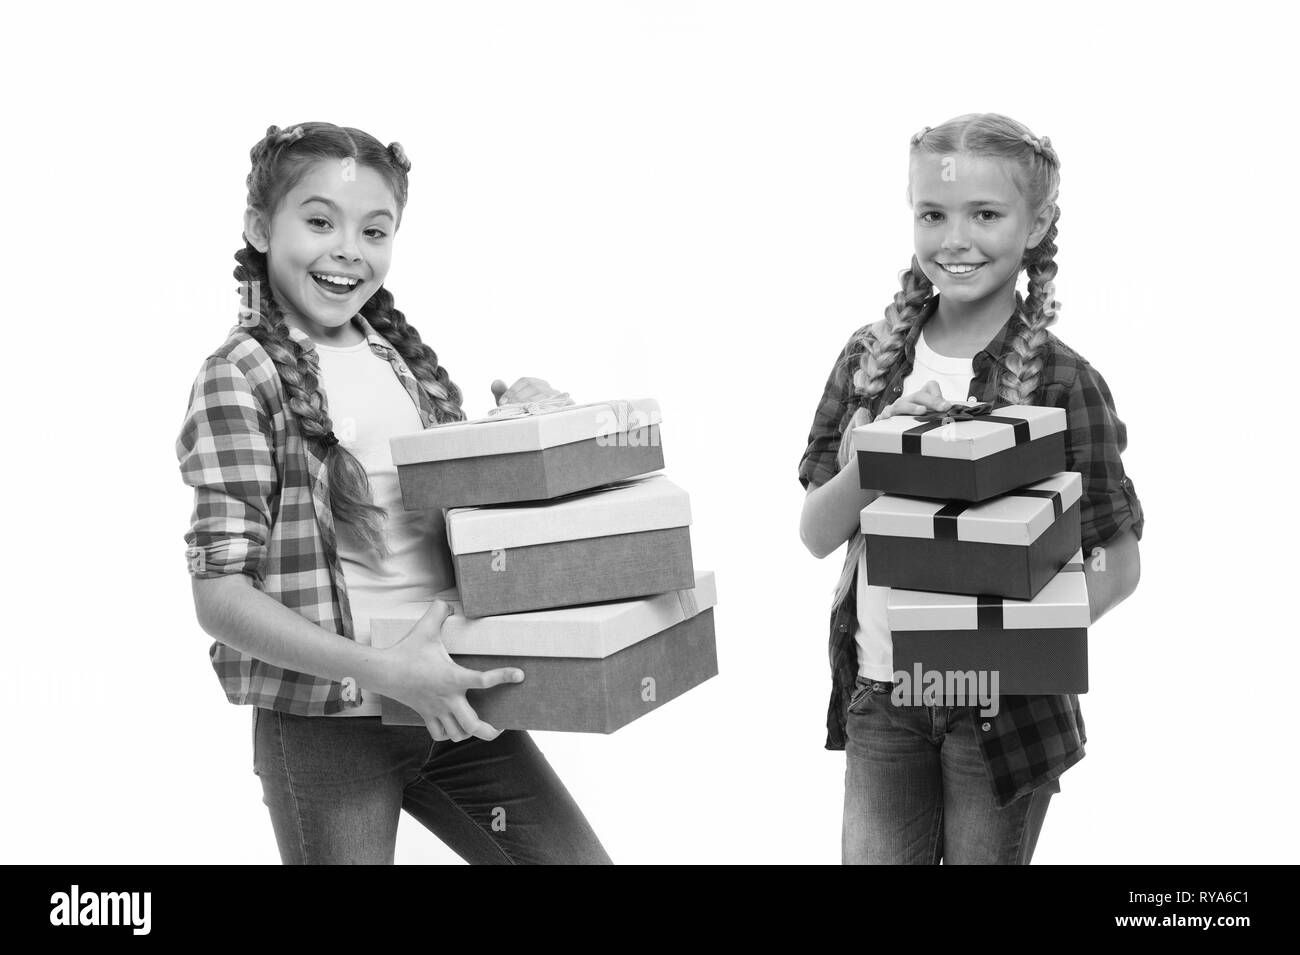 Kids little girls with braids hairstyle hold piles gift boxes. Children excited about unpacking gifts. Small girls sisters received birthday gifts. Dr - Stock Image